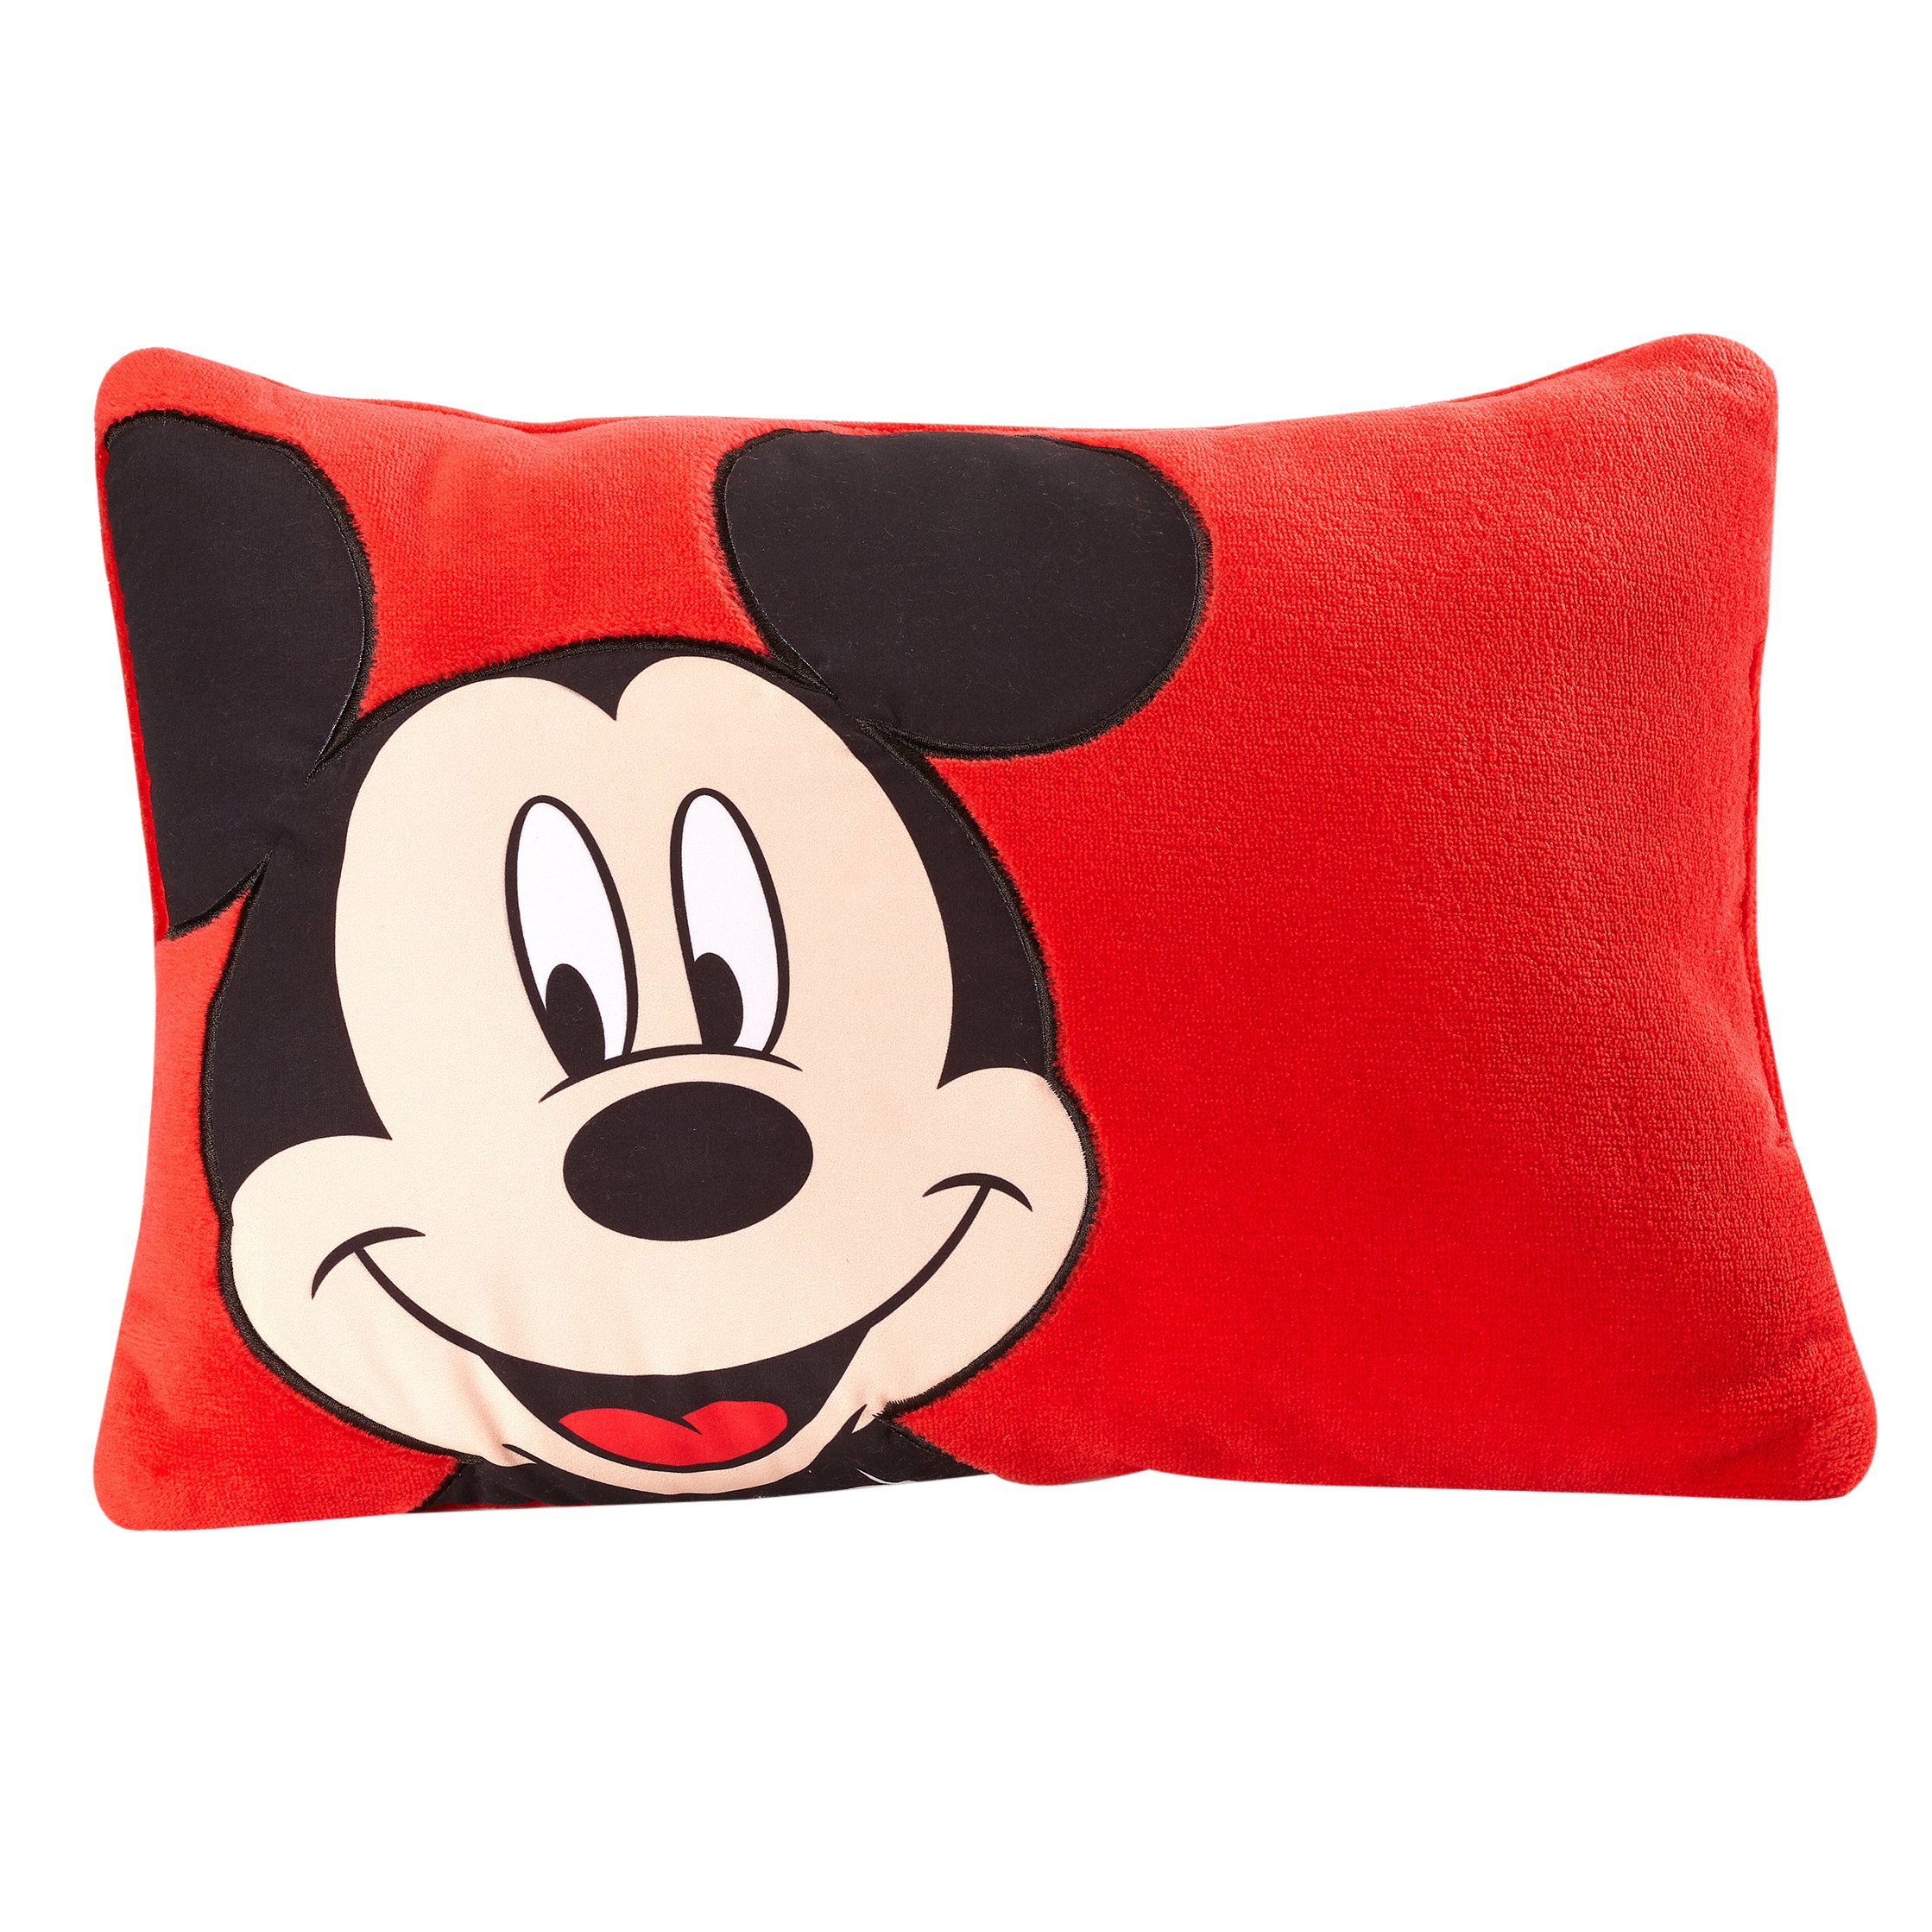 clearance cover gallery for pillow decor sale throw covers cheap of decorative pillows